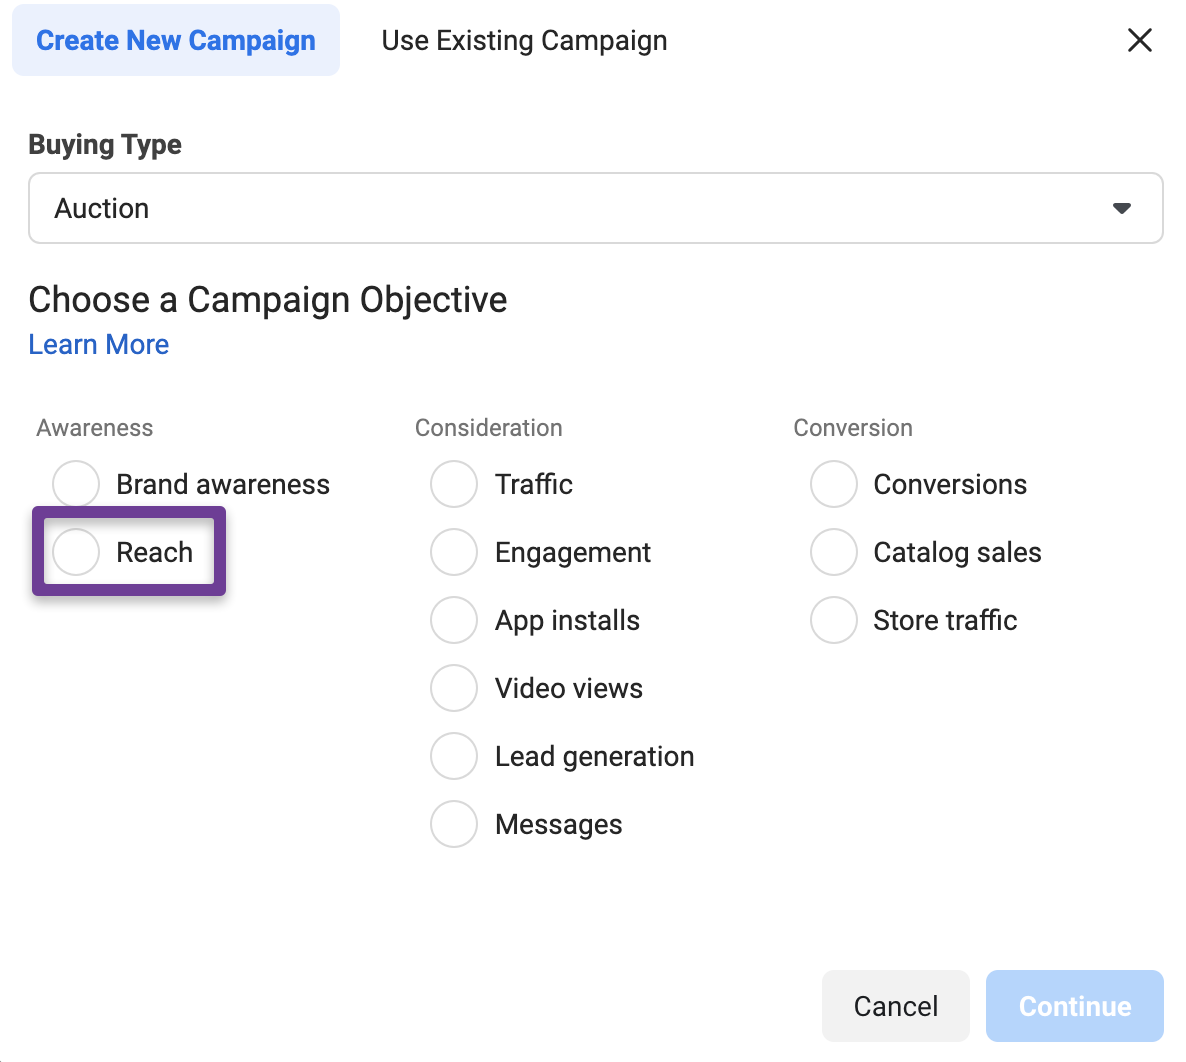 Campaign objectives tell Facebook about your goals